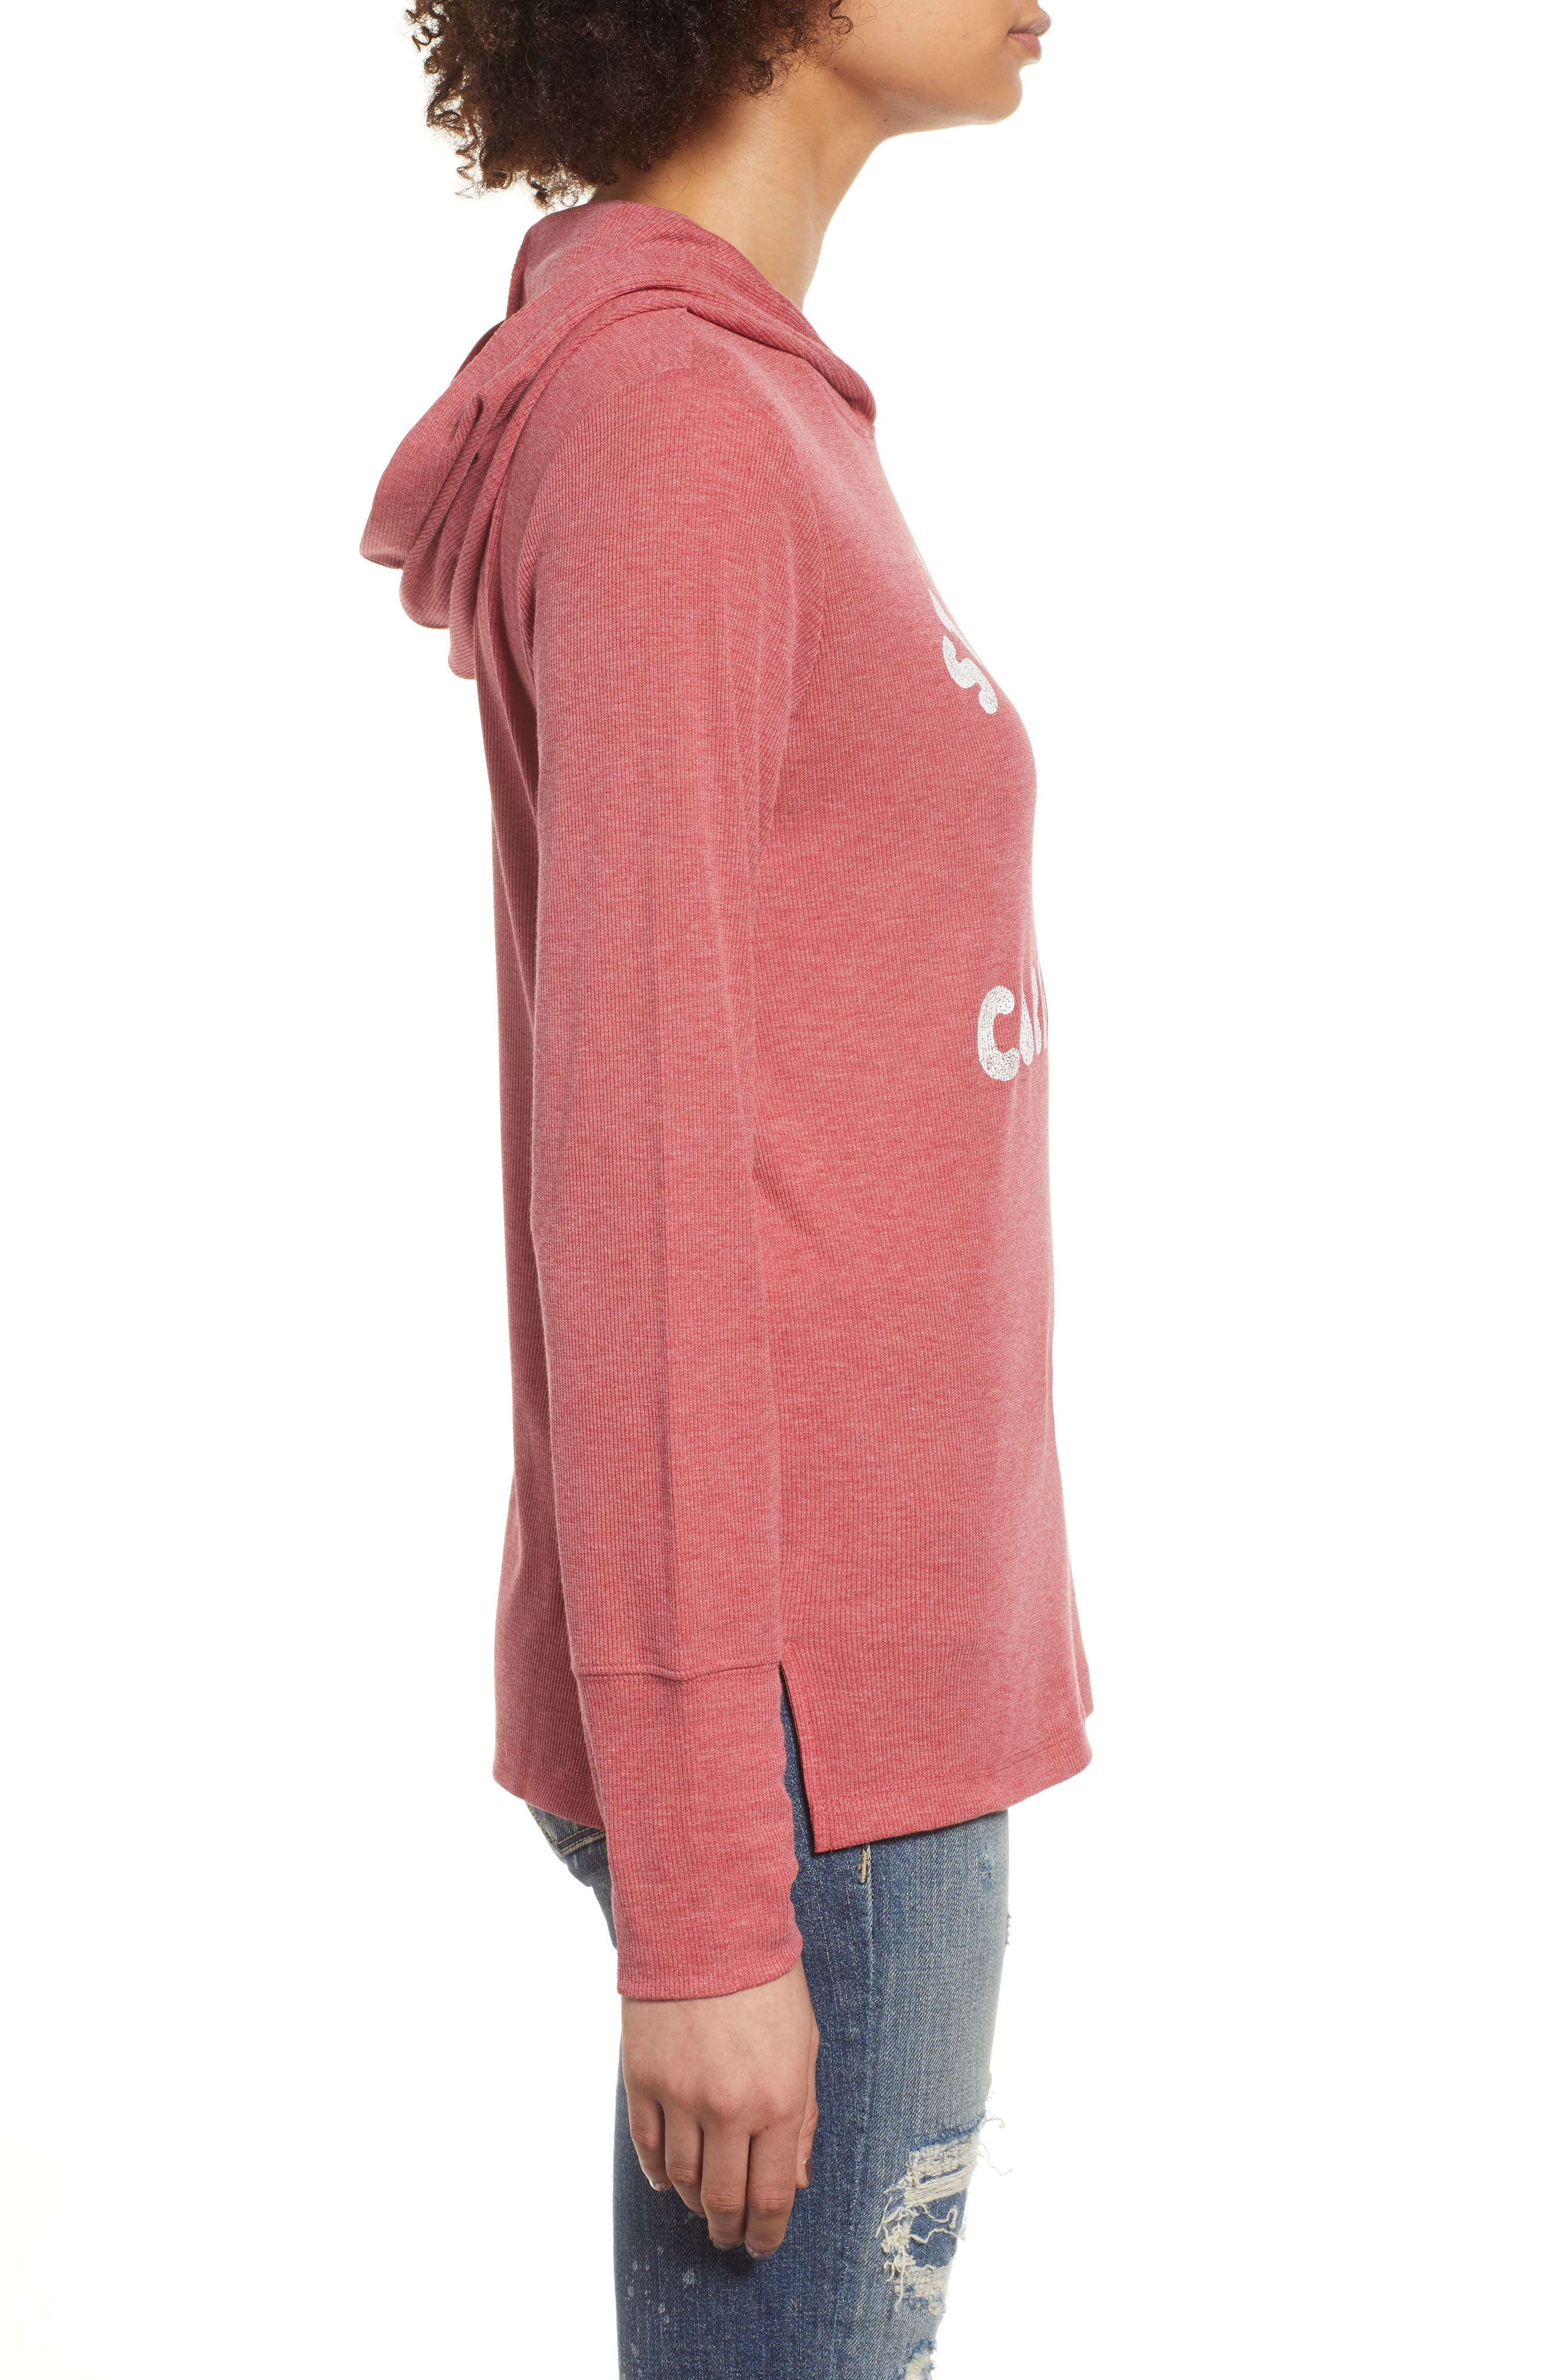 Campbell St. Louis Cardinals Rib Knit Hooded Top,                             Alternate thumbnail 3, color,                             600